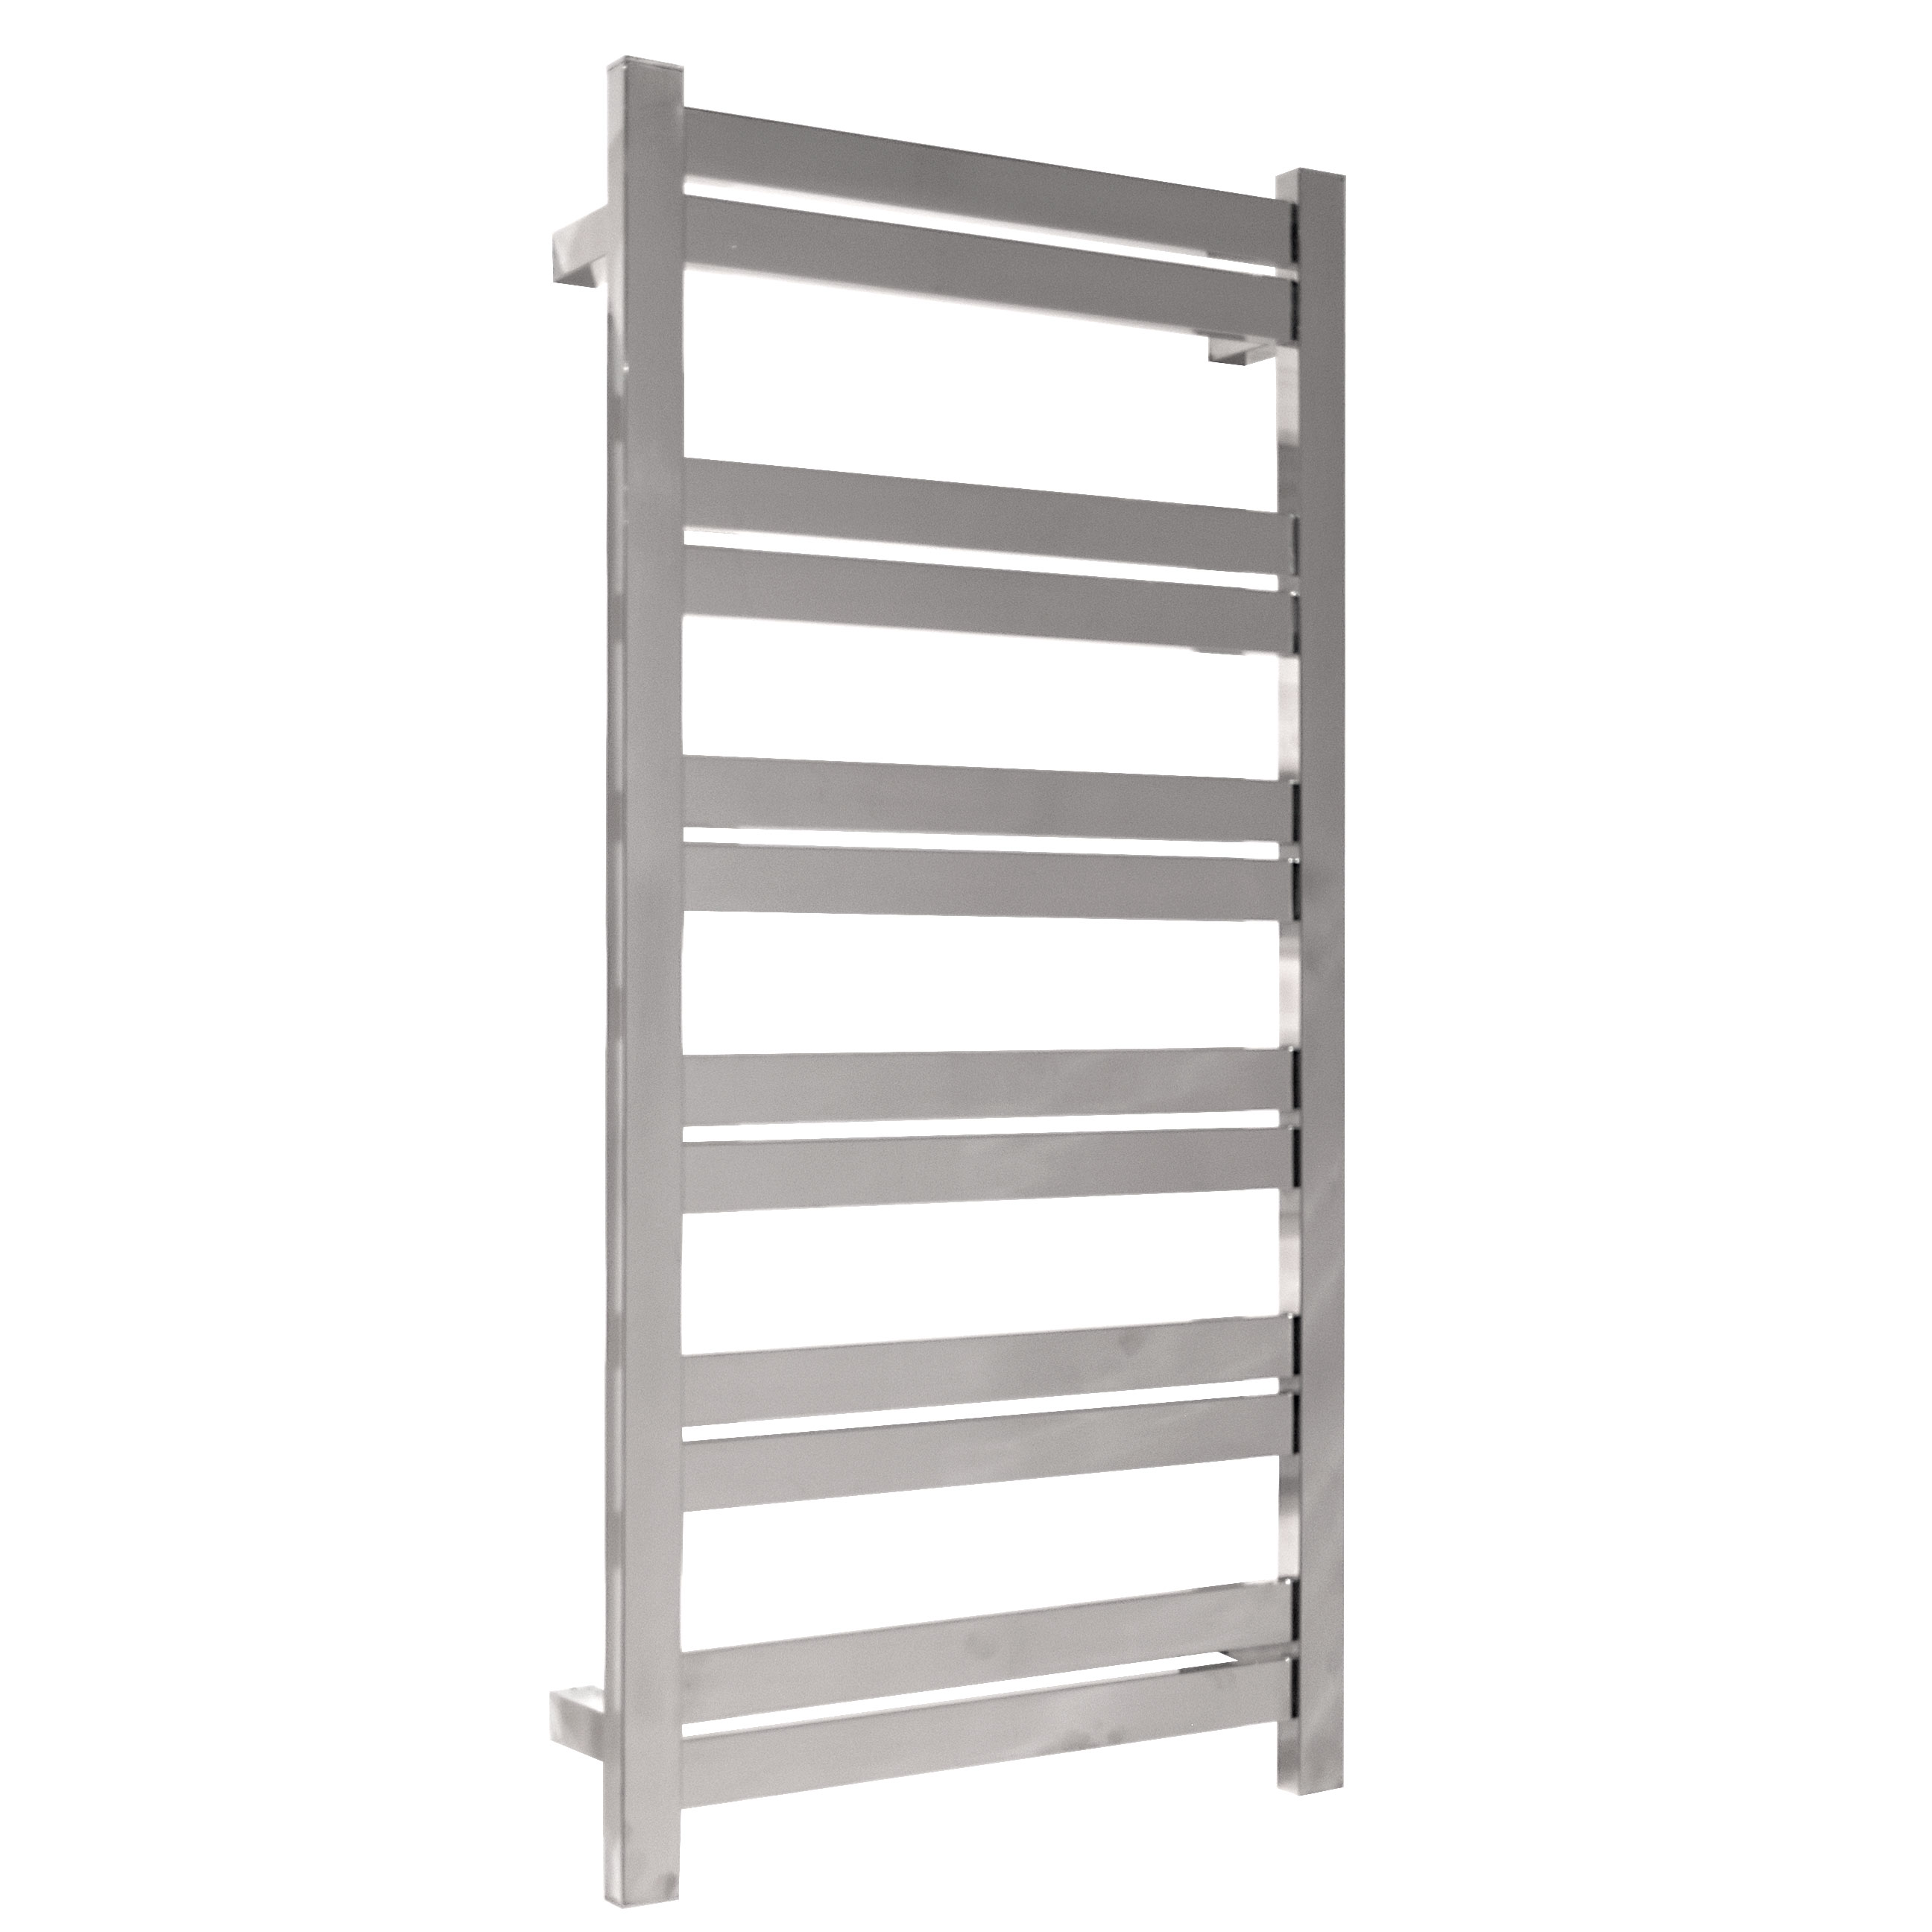 Amba Towel Warmers | Hydronic Towel Warmers | Home Depot Bathroom Towel Racks